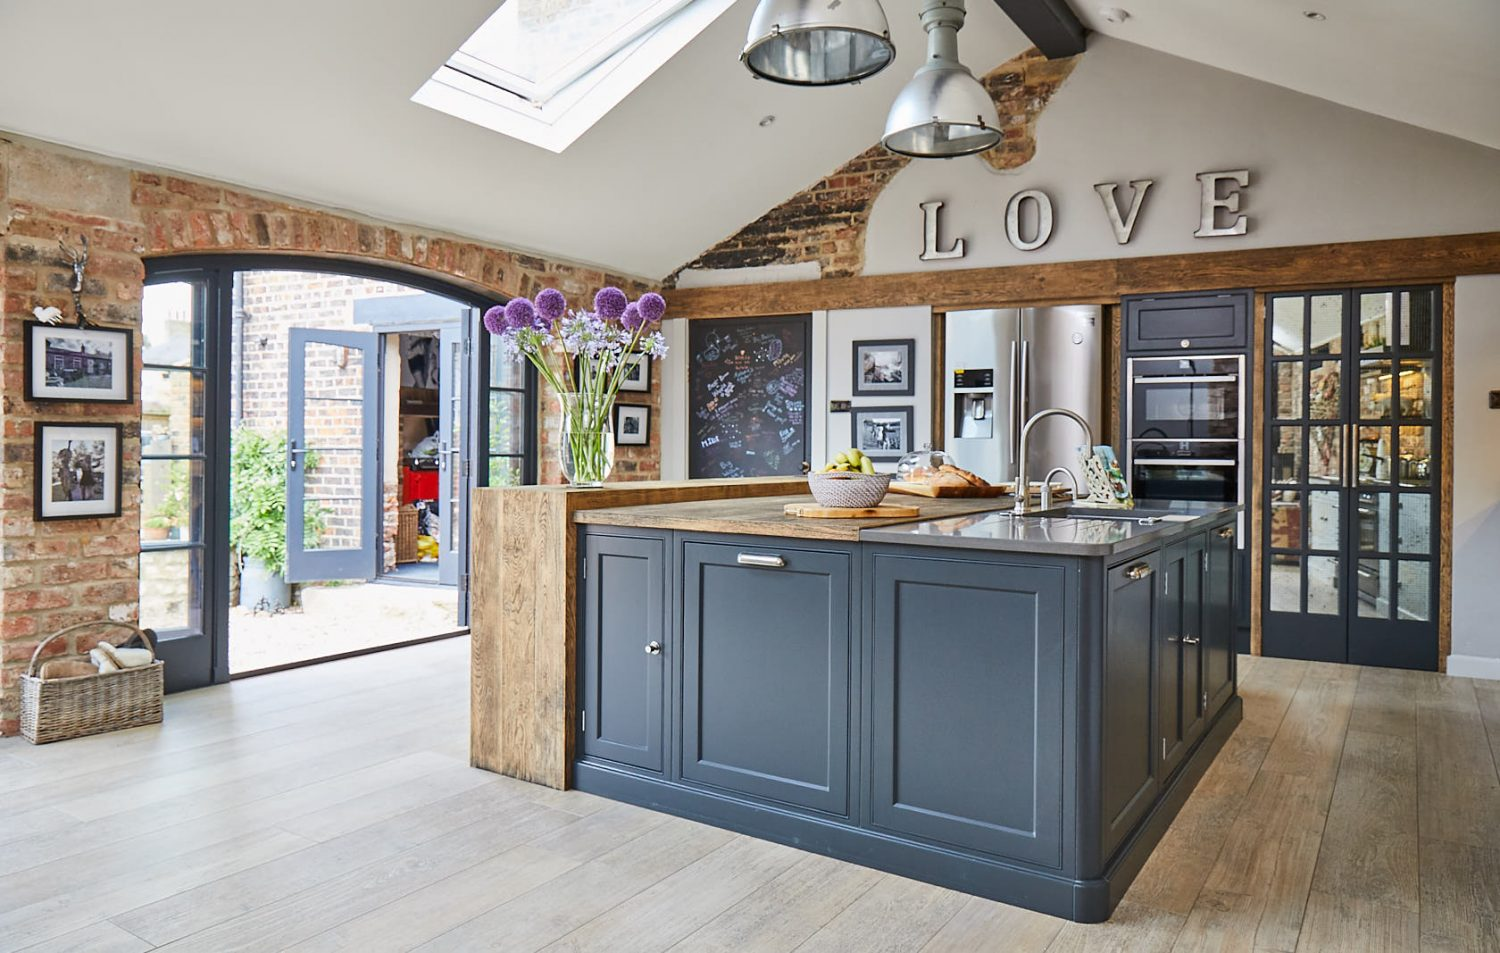 Painted Lamp Black shaker cabinets make up kitchen island with Caesarstone and oak worktop